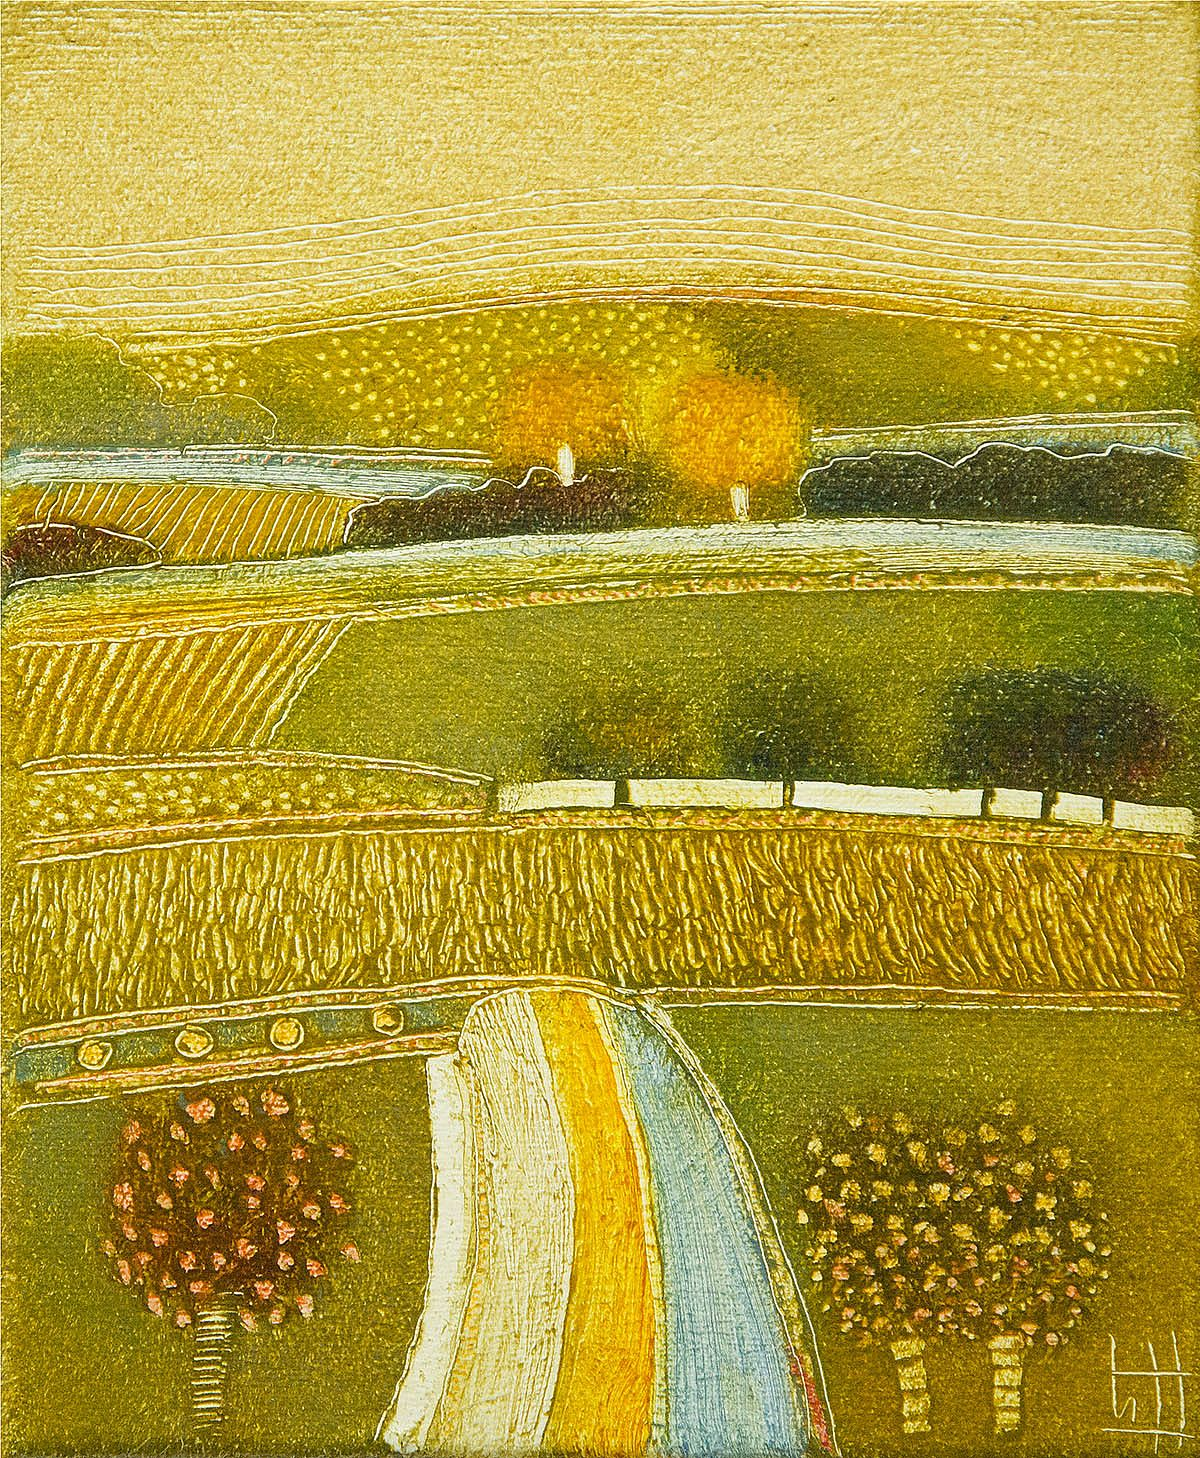 On a golden autumn day by Rob van Hoek